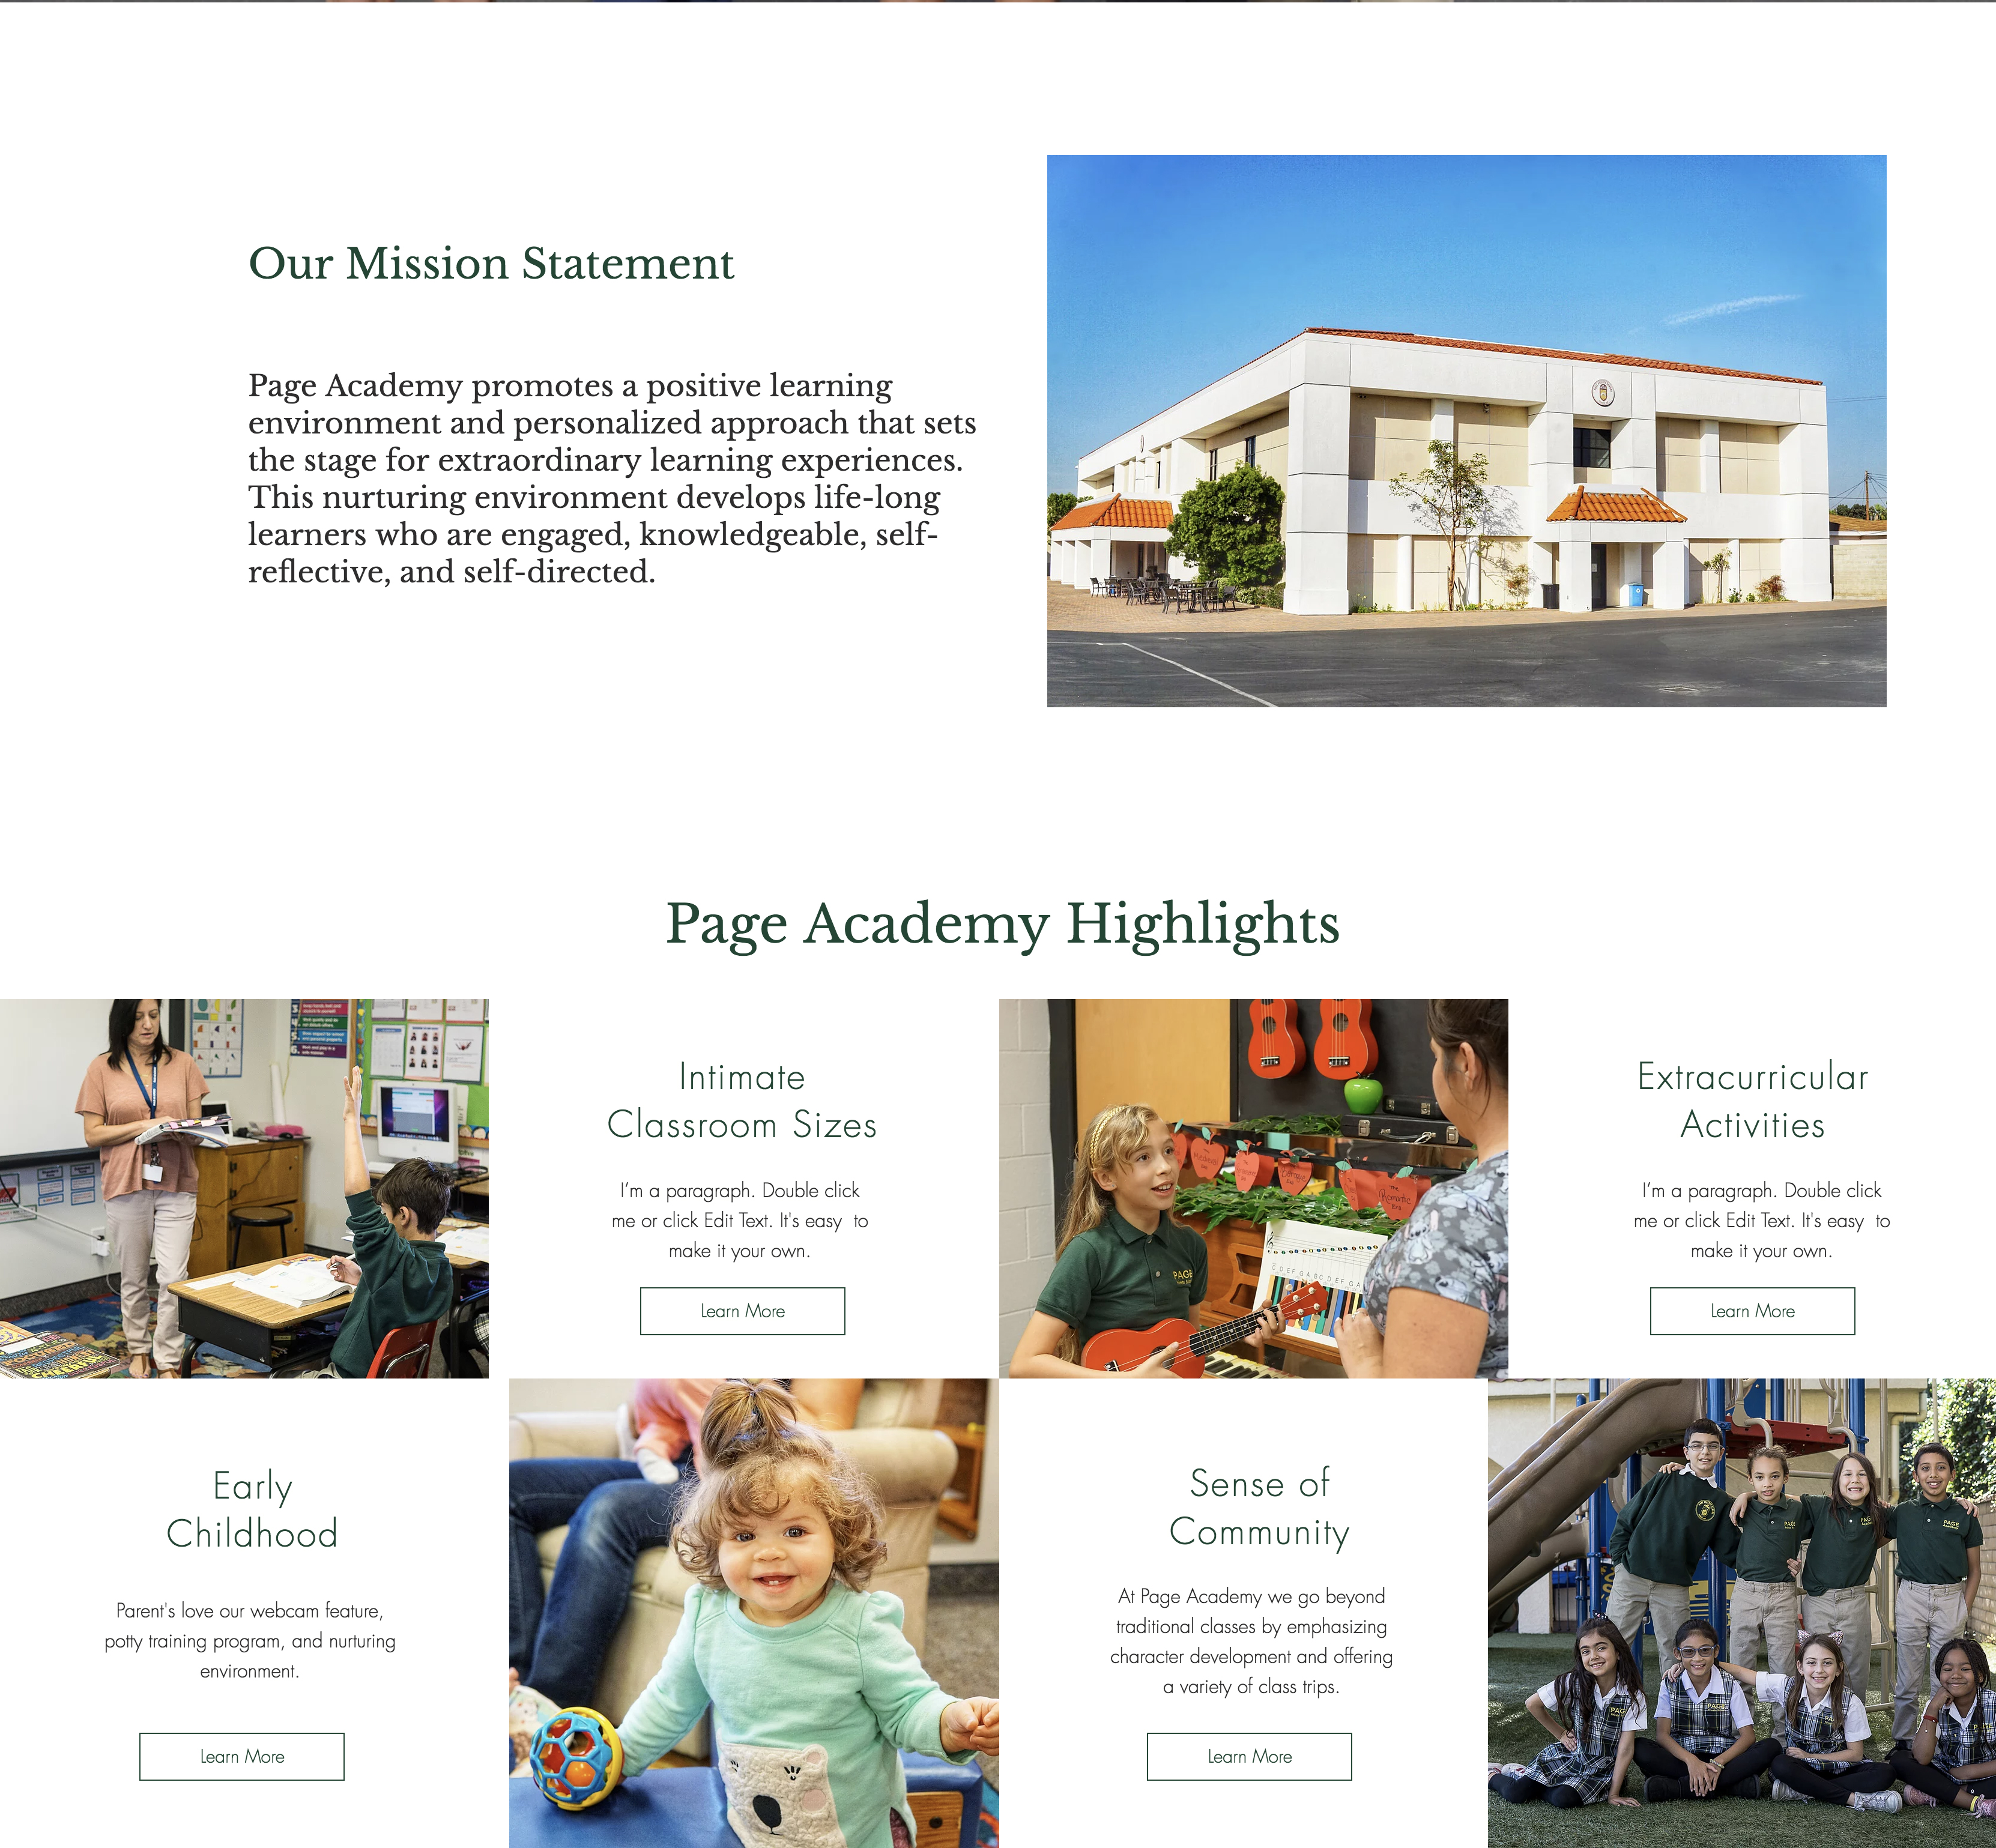 PAGE ACADEMY